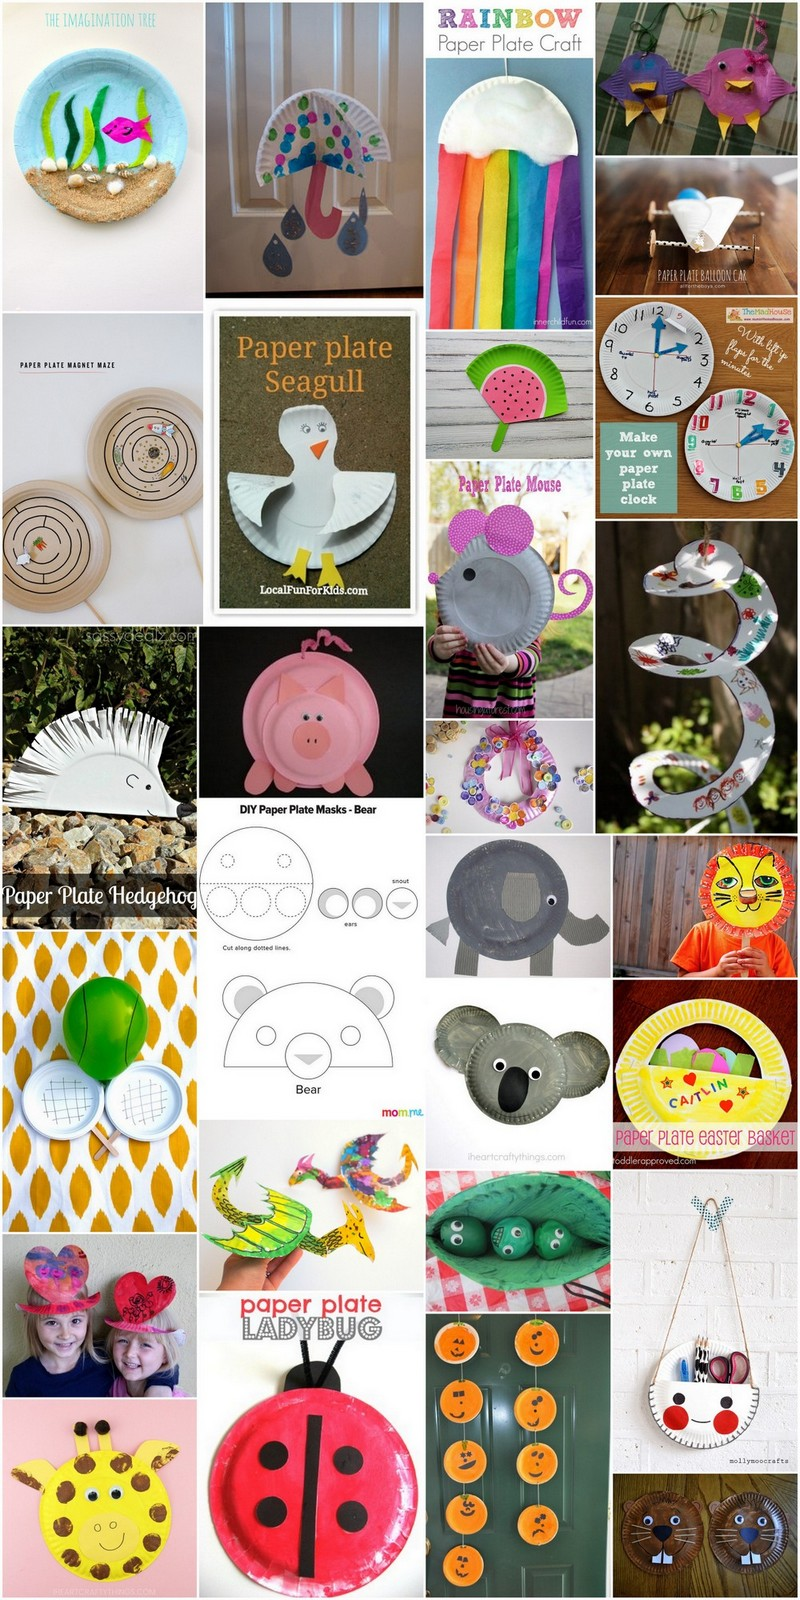 30 Easy Diy Craft Ideas Using Paper Plates Diy Easy Crafting Ideas And Plans